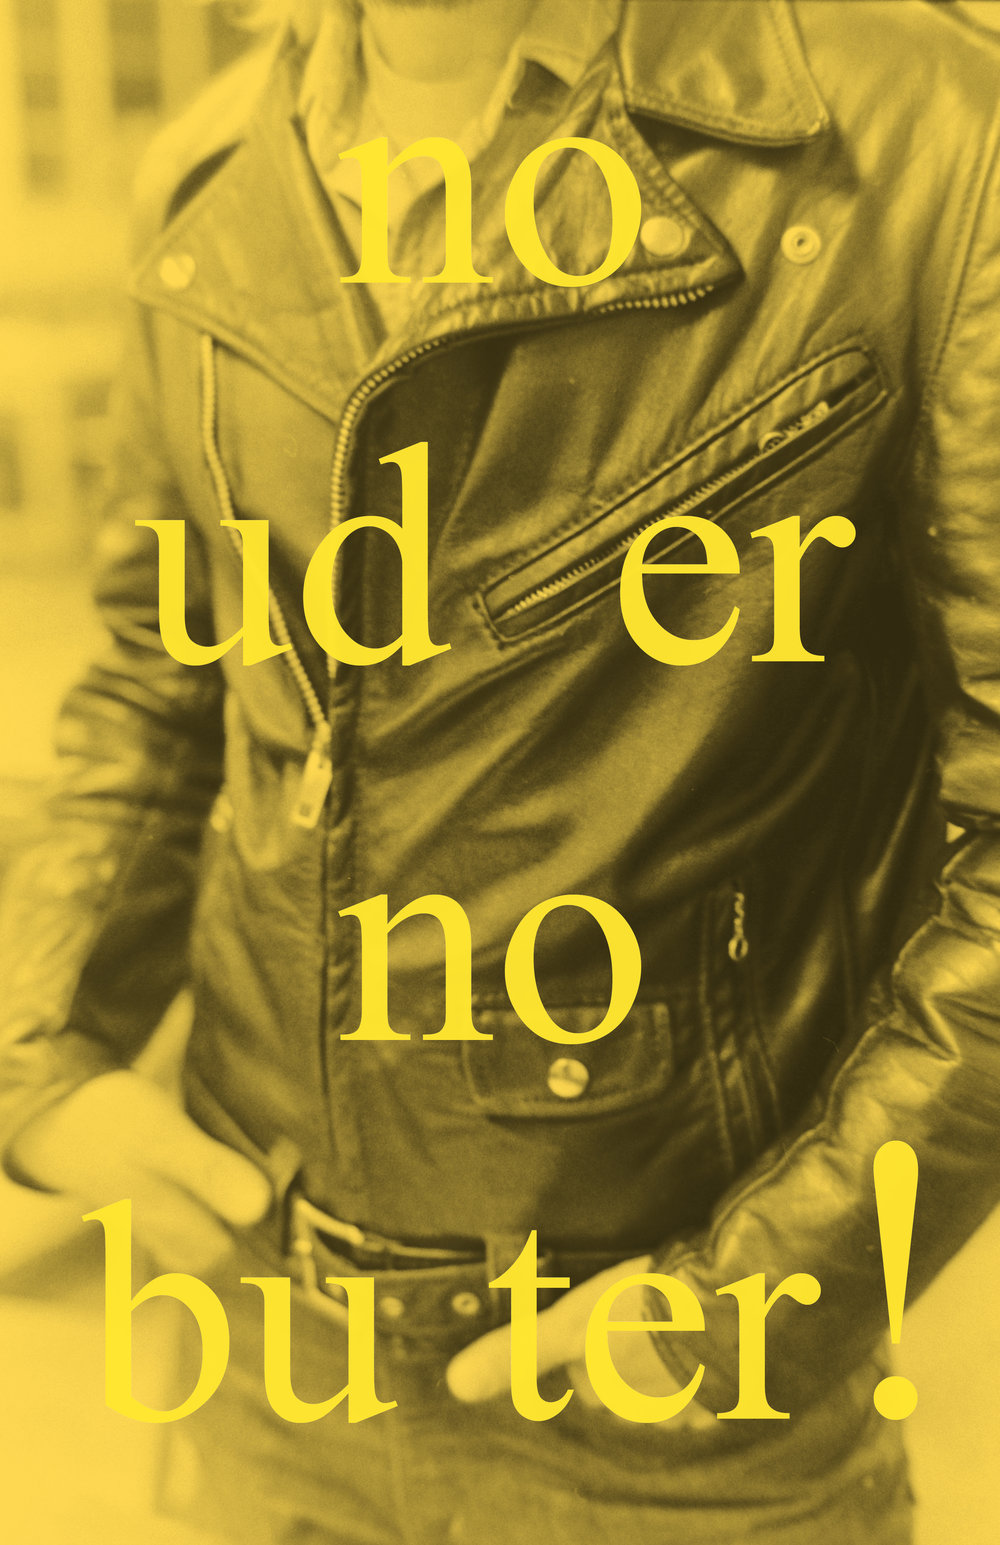 No udder no butter! yellow 3.jpg